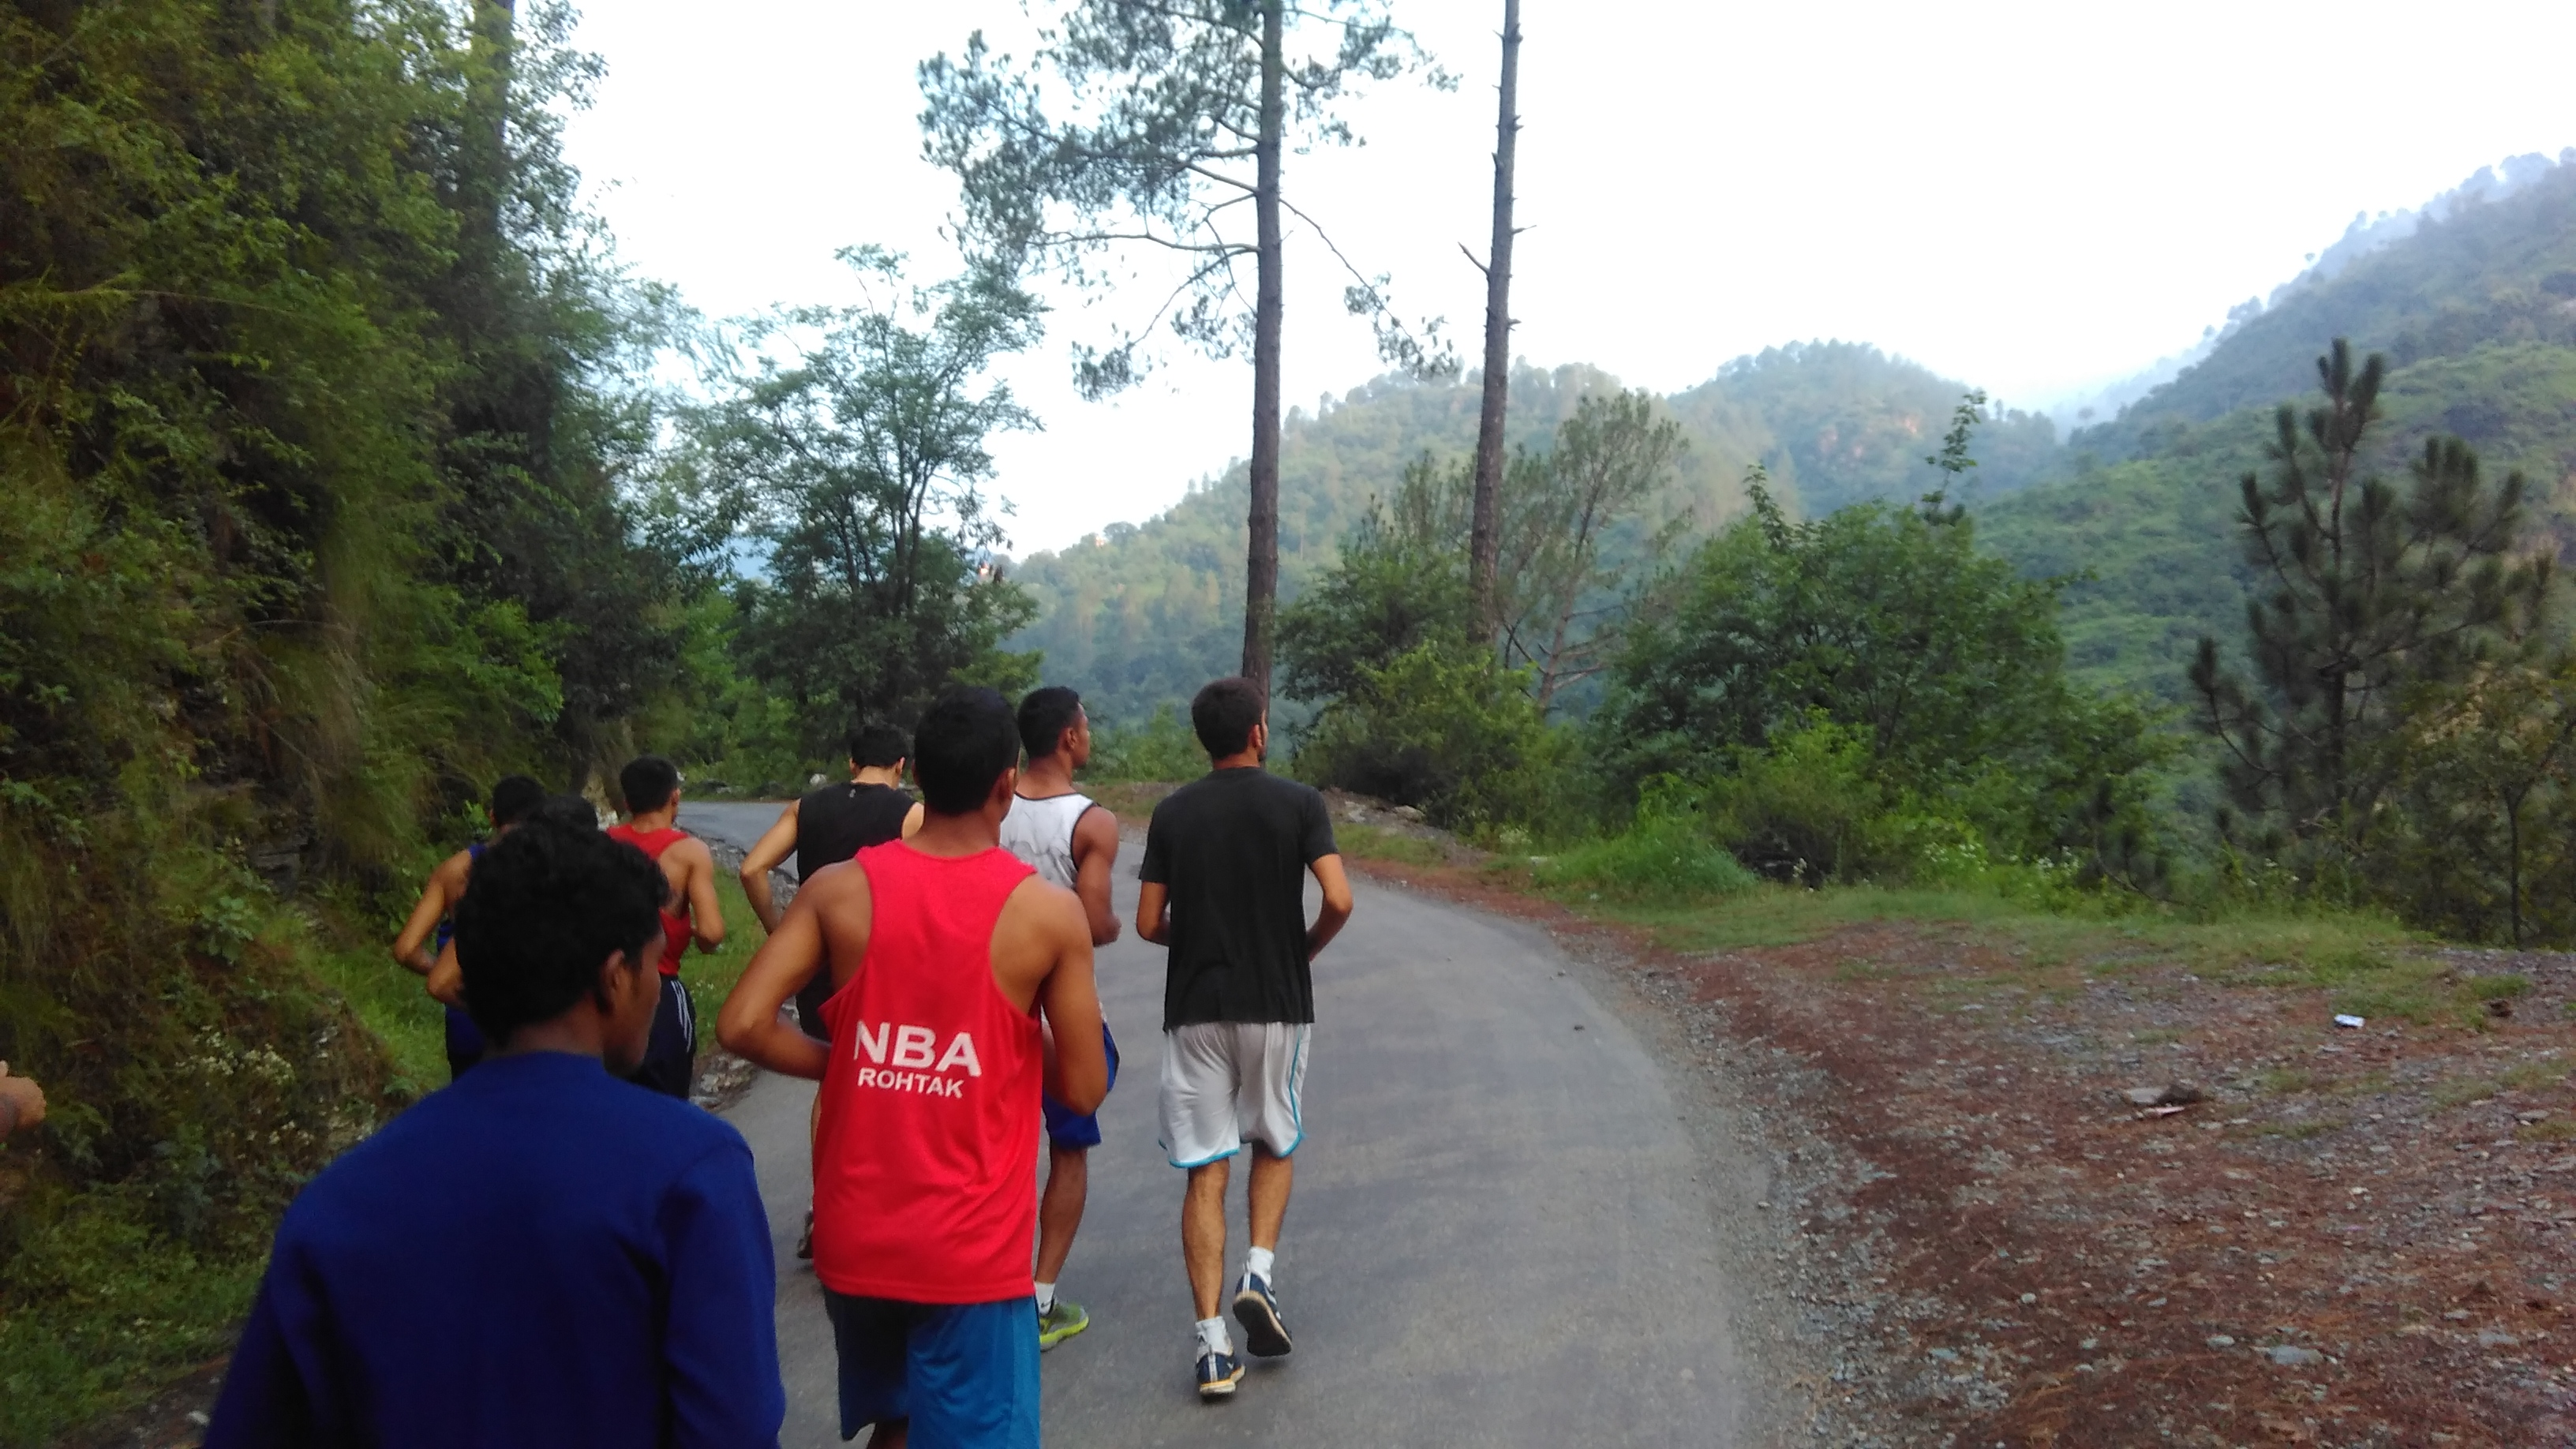 Sports Authority of India National Boxing Academy Rohtak's Trainees During Their Cross Country Run to Chail